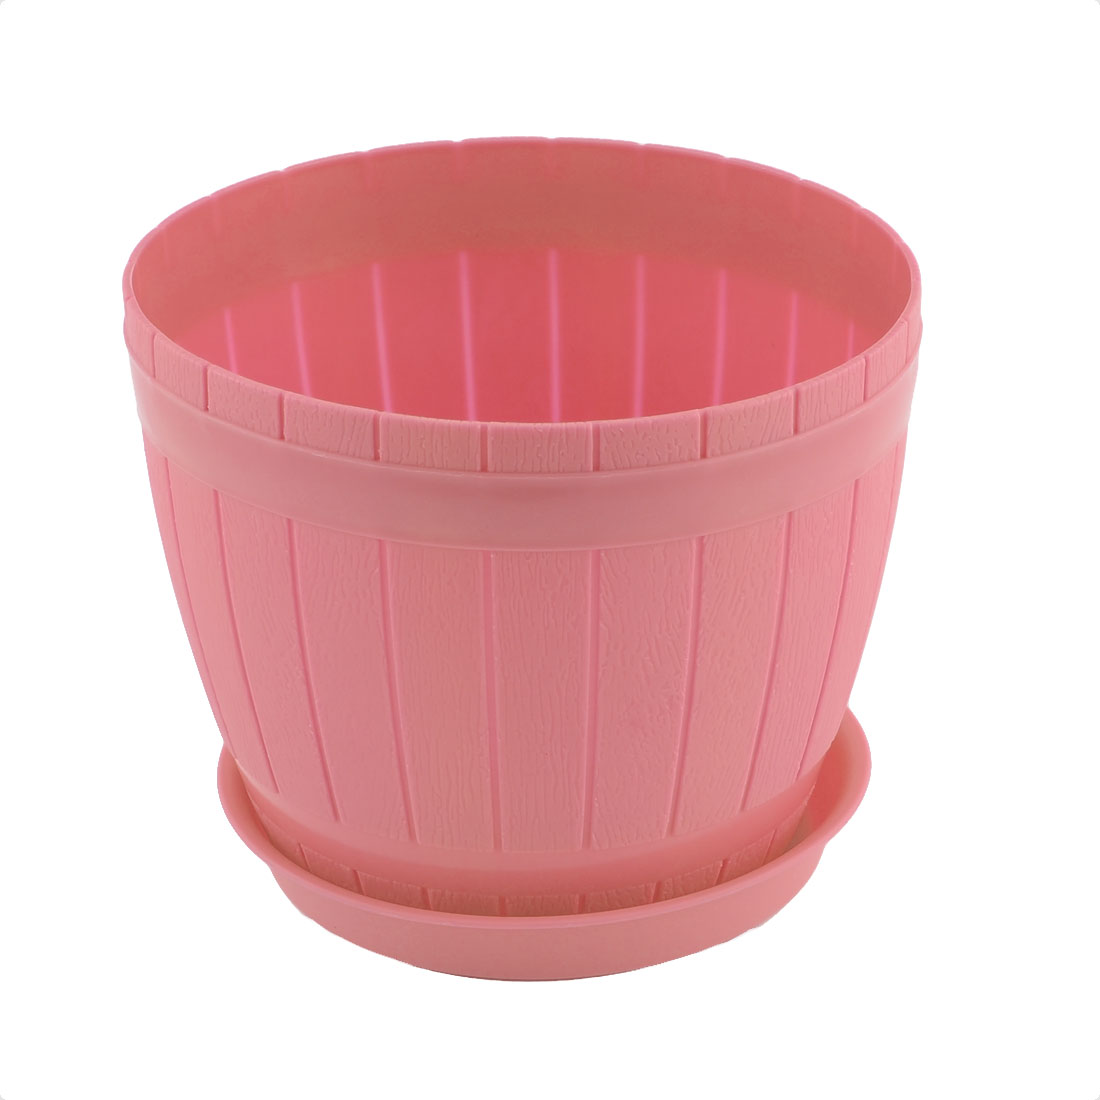 Home Office Hotel Decor Plastic Casks Shape Plant Flower Pot Holder Pink w Tray